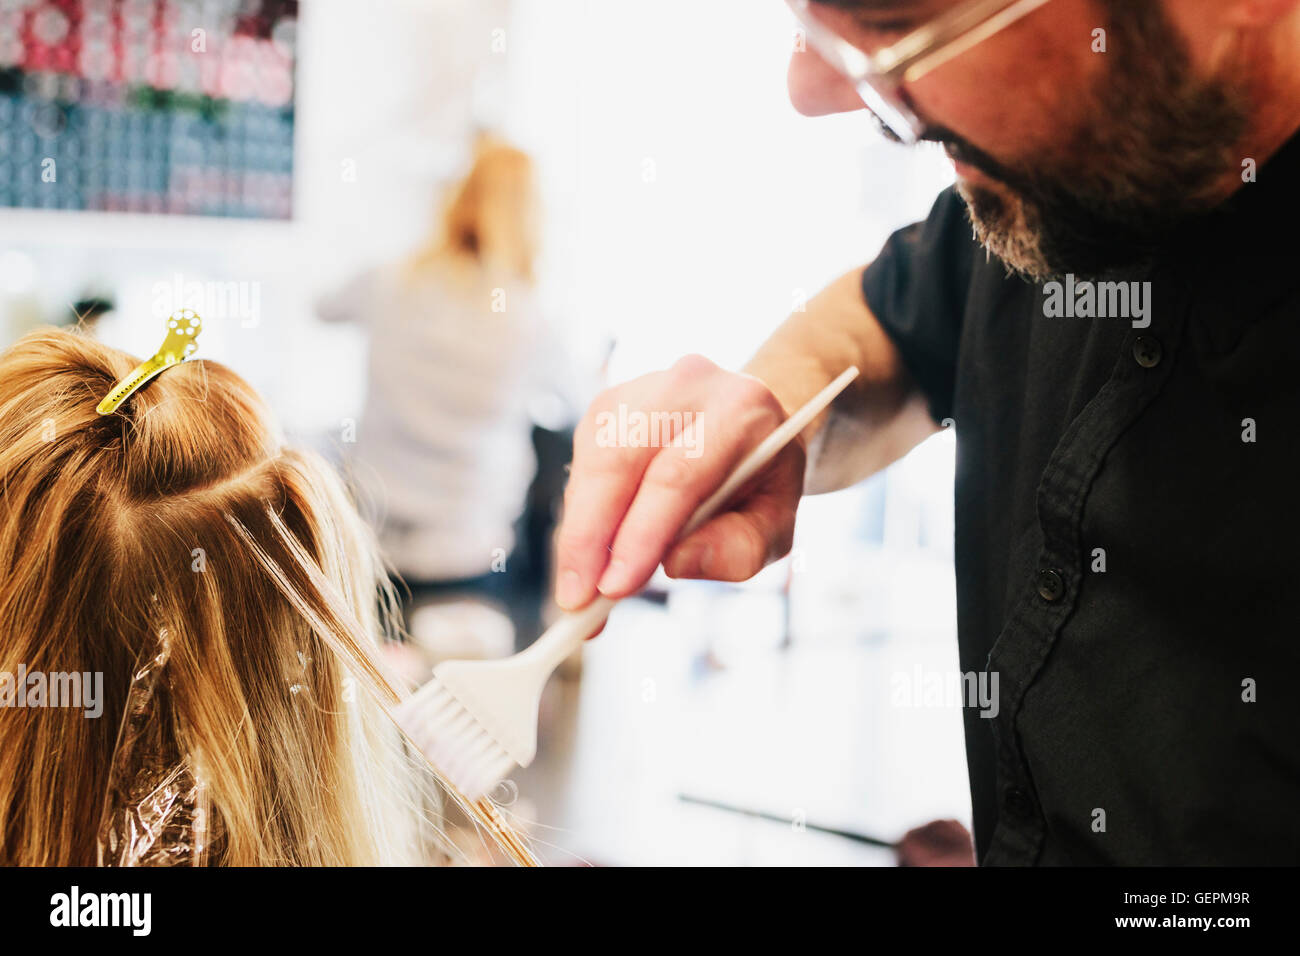 A hair colourist, a man using a paintbrush to cover sections of a woman's blonde hair. - Stock Image